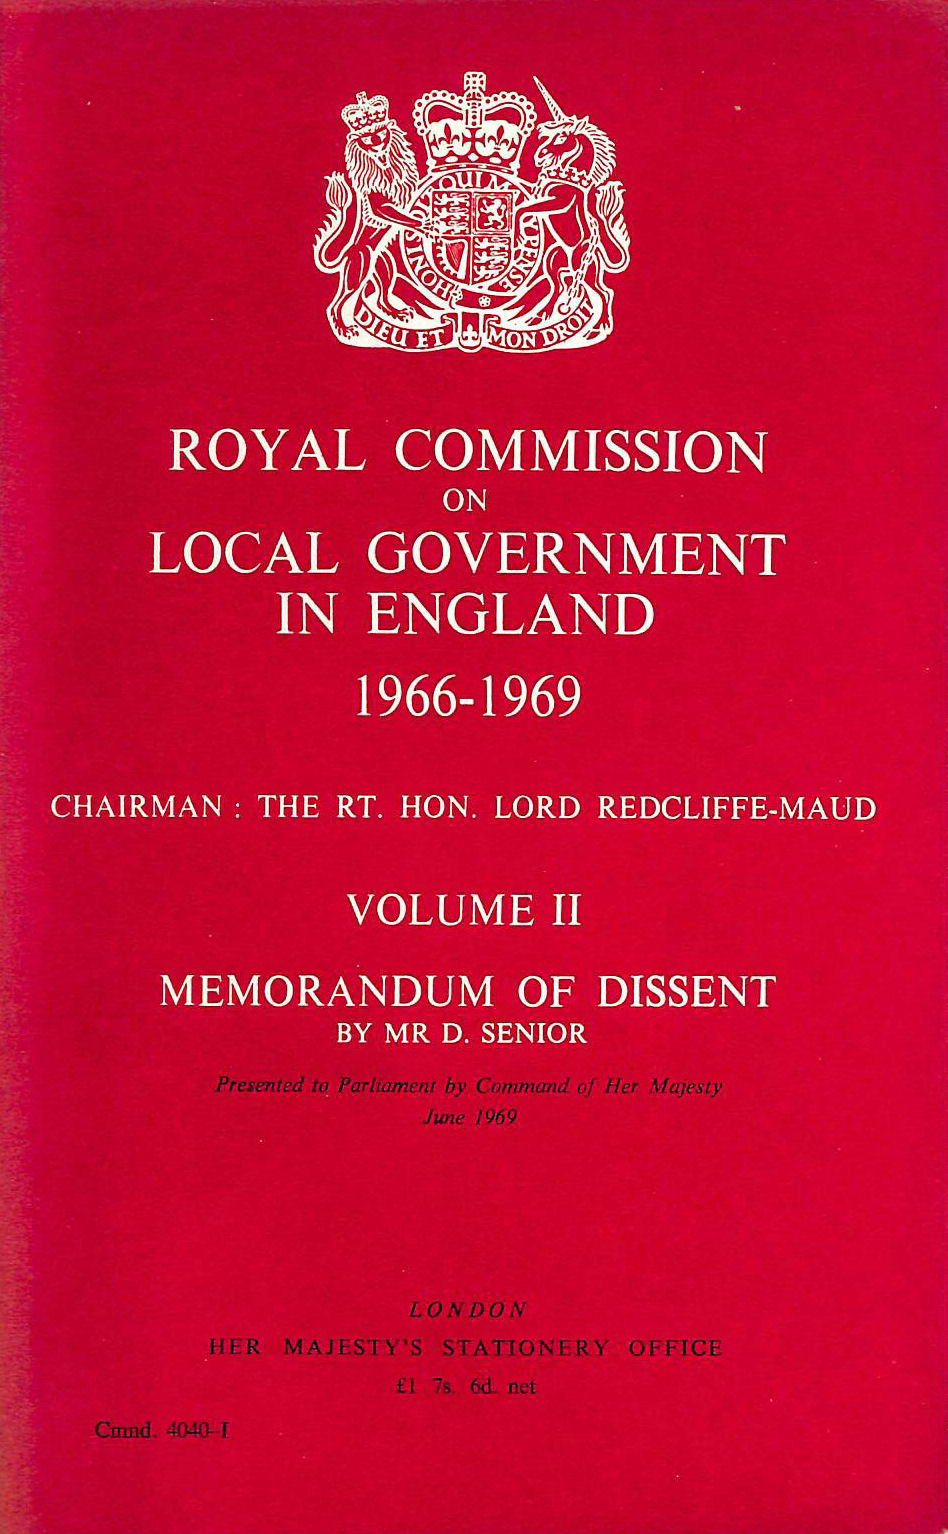 Image for Royal Commission on Local Government in England 1966-69: Memorandum of Dissent by Mr.D.Senior v. 2 (Command 4040-1)